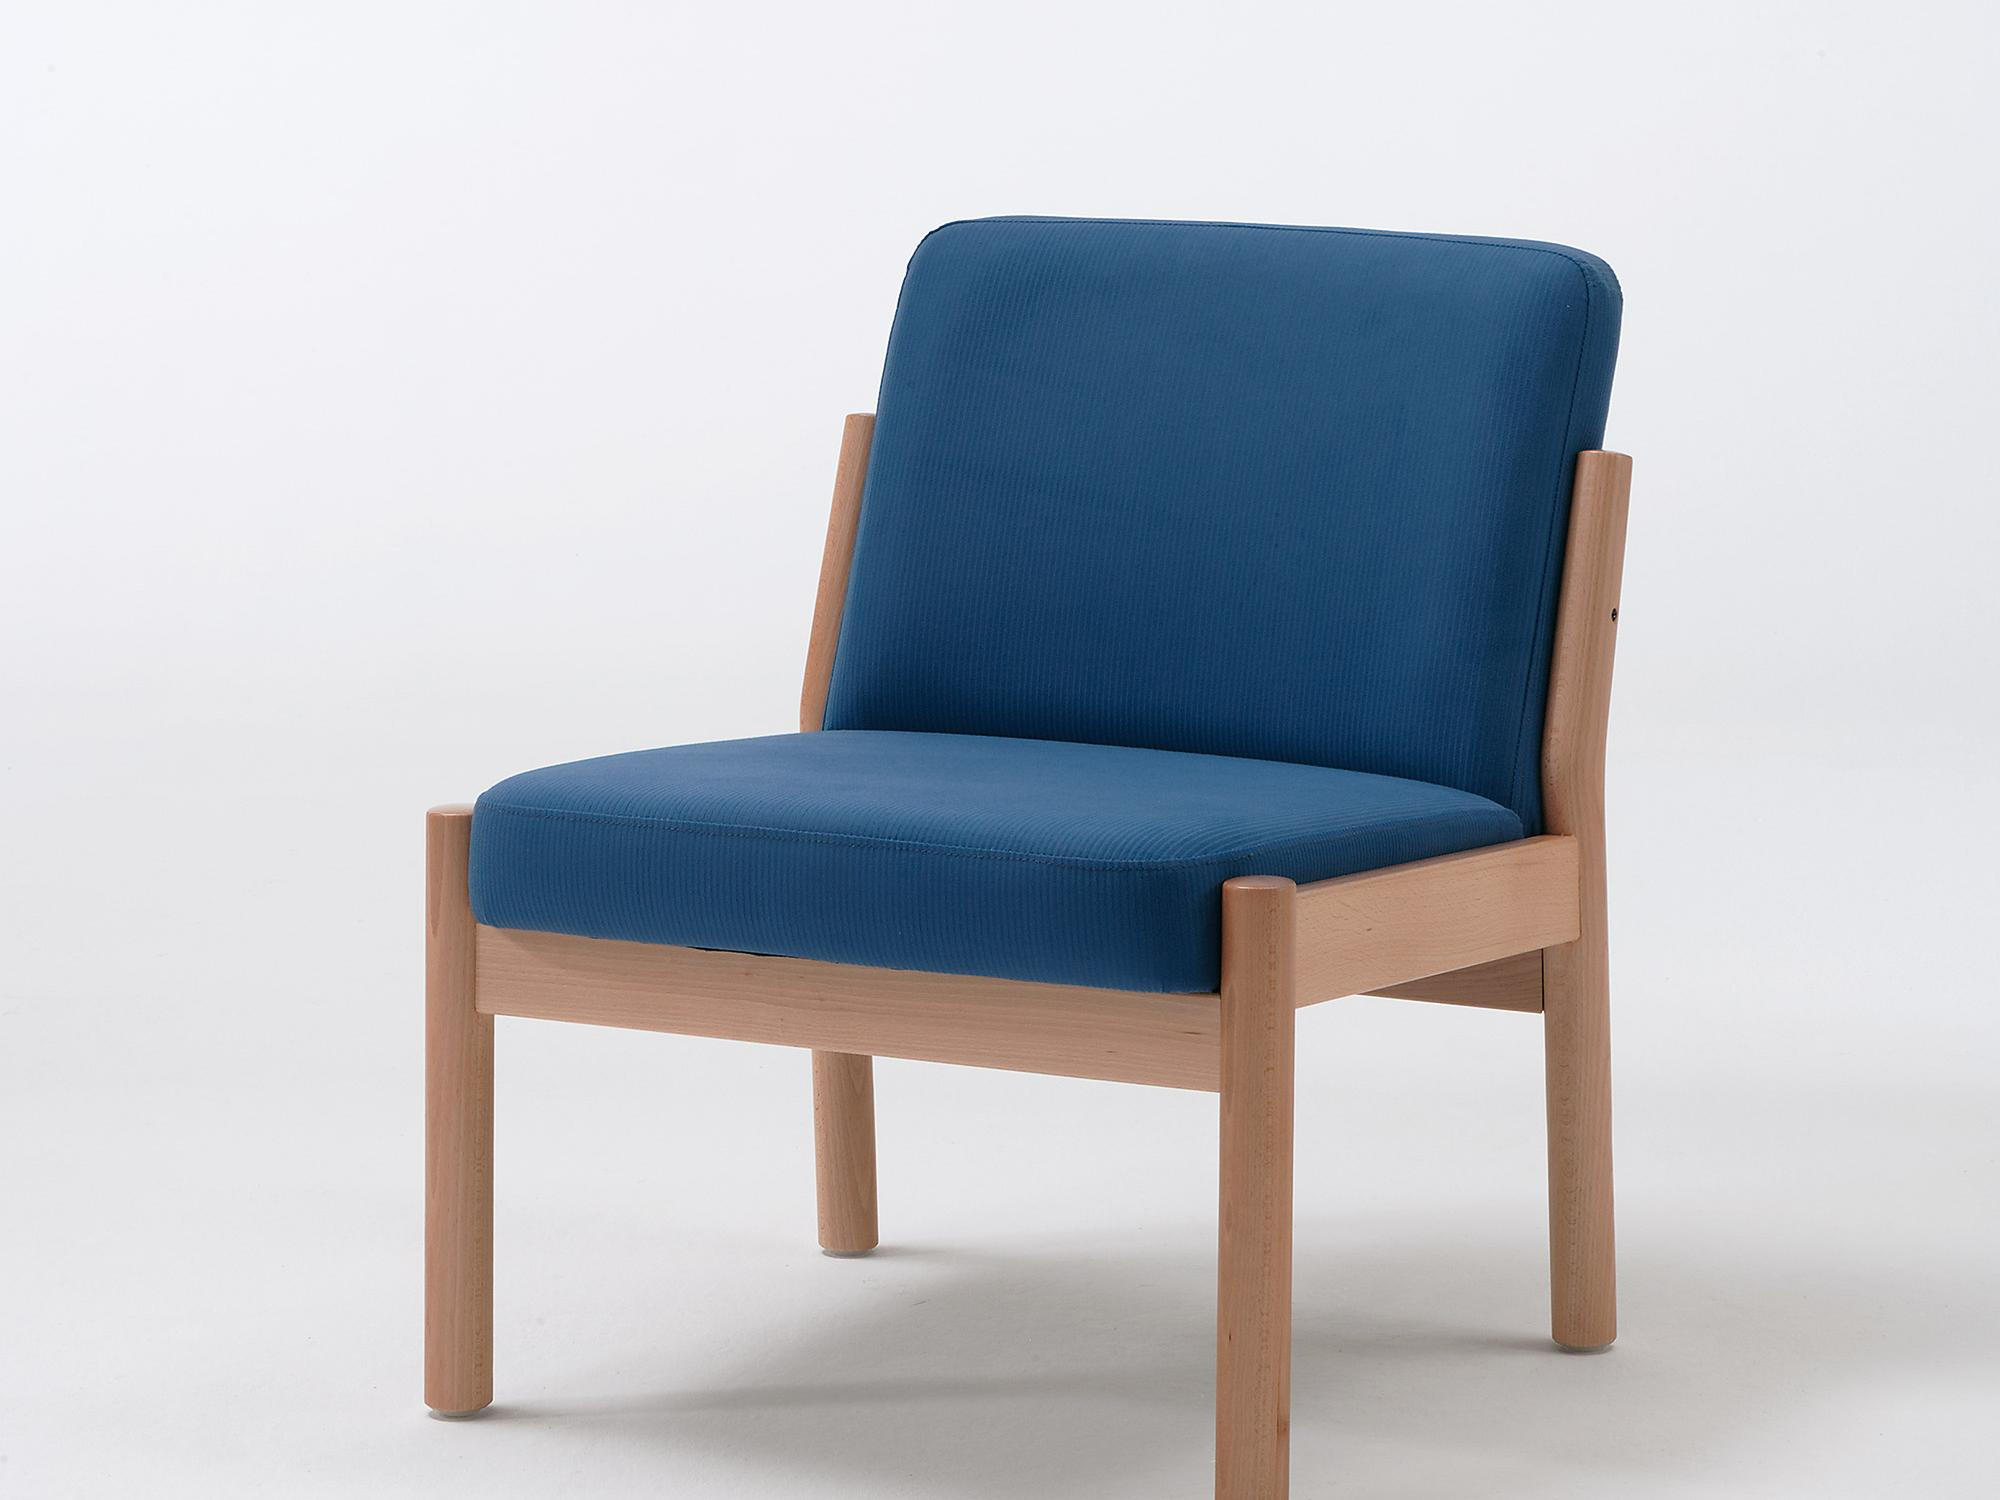 The Primo model as an easy chair